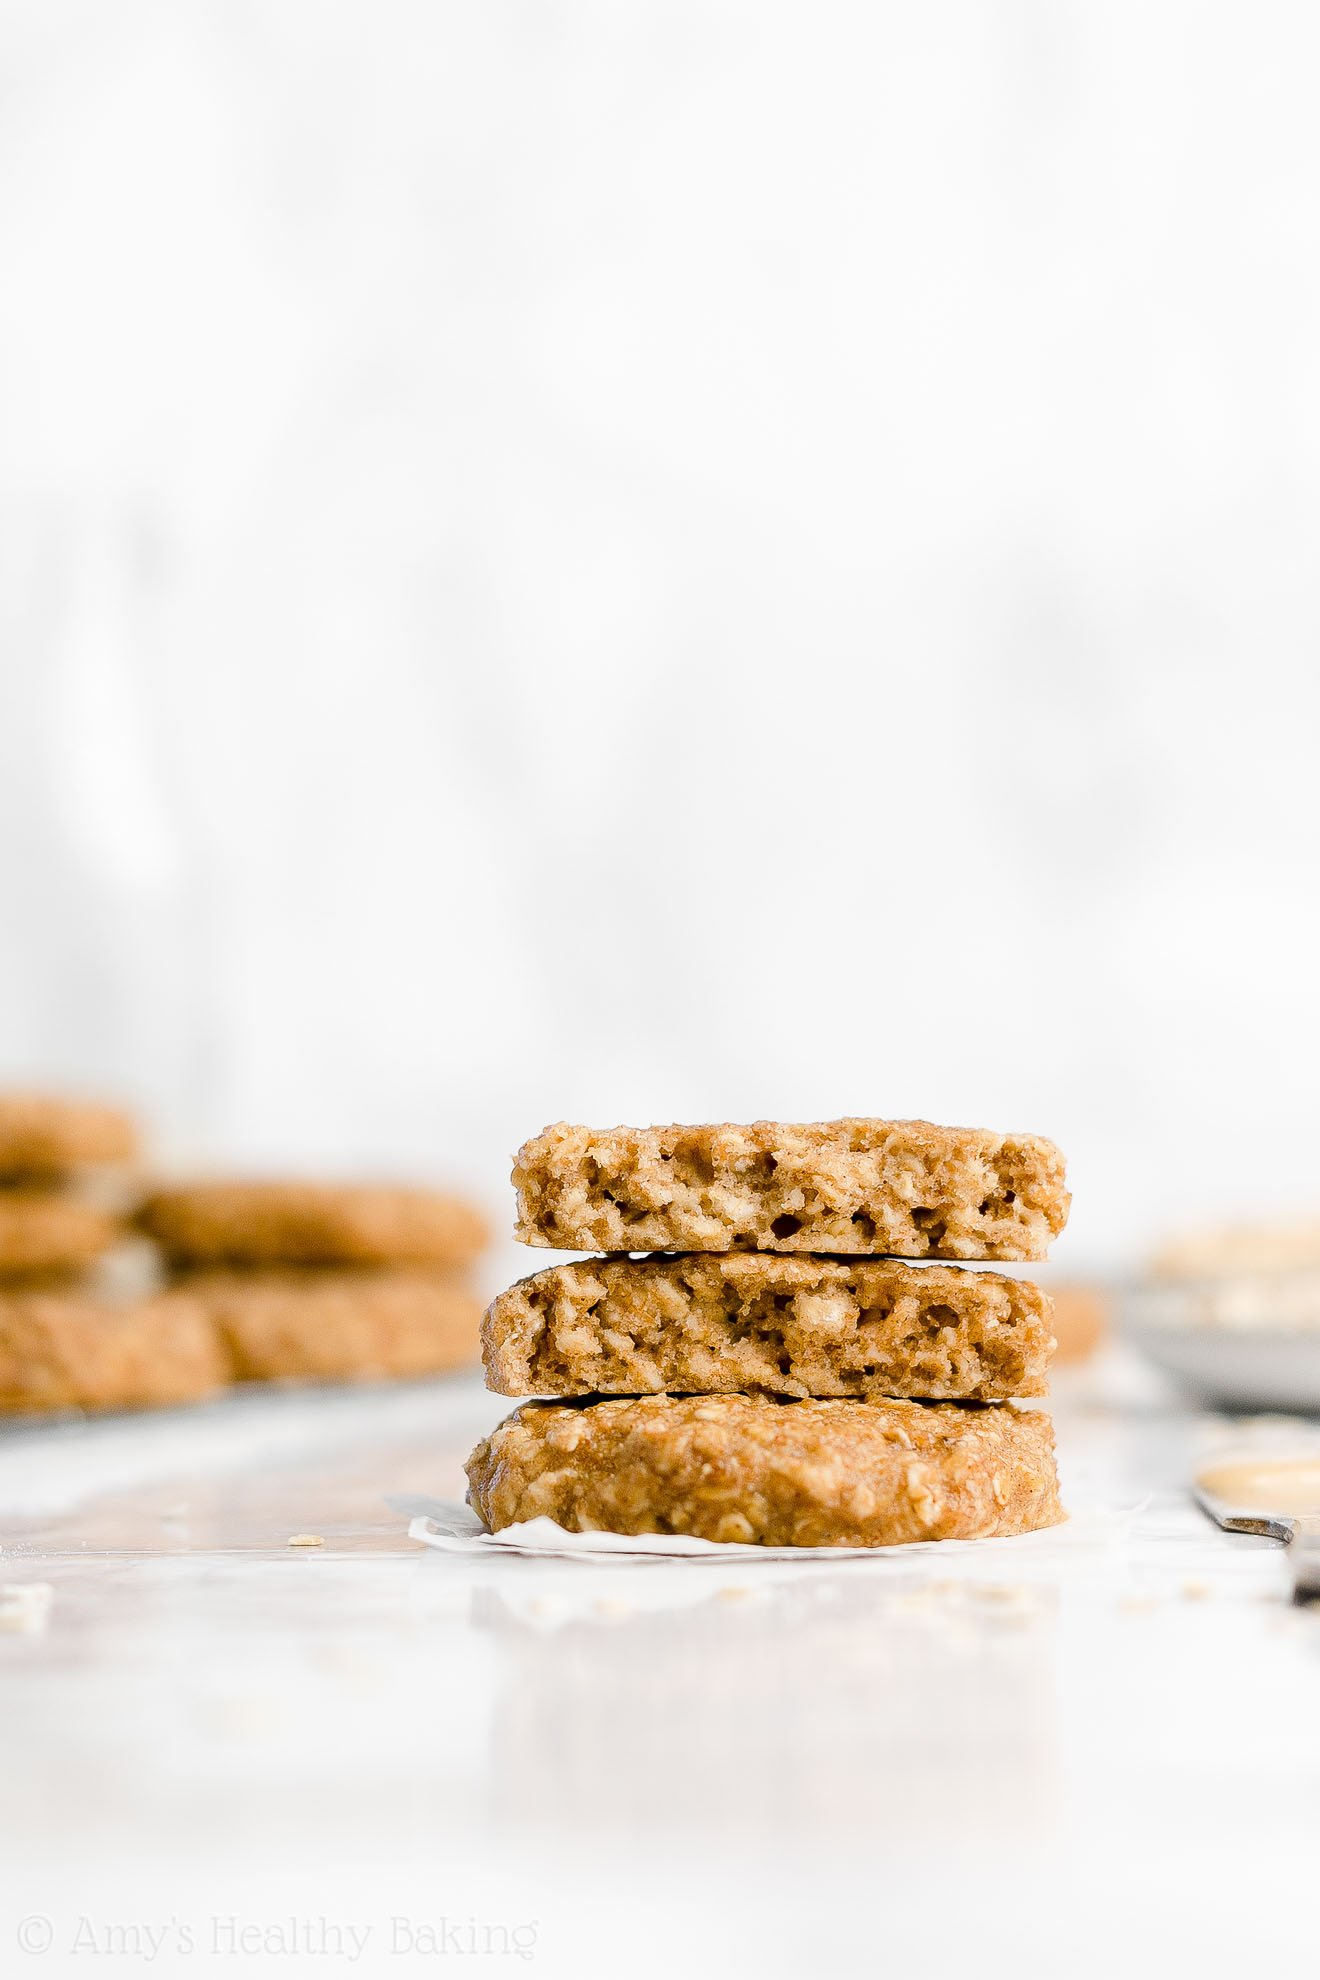 Easy Healthy Weight Watchers Peanut Butter Banana Oatmeal Breakfast Cookies